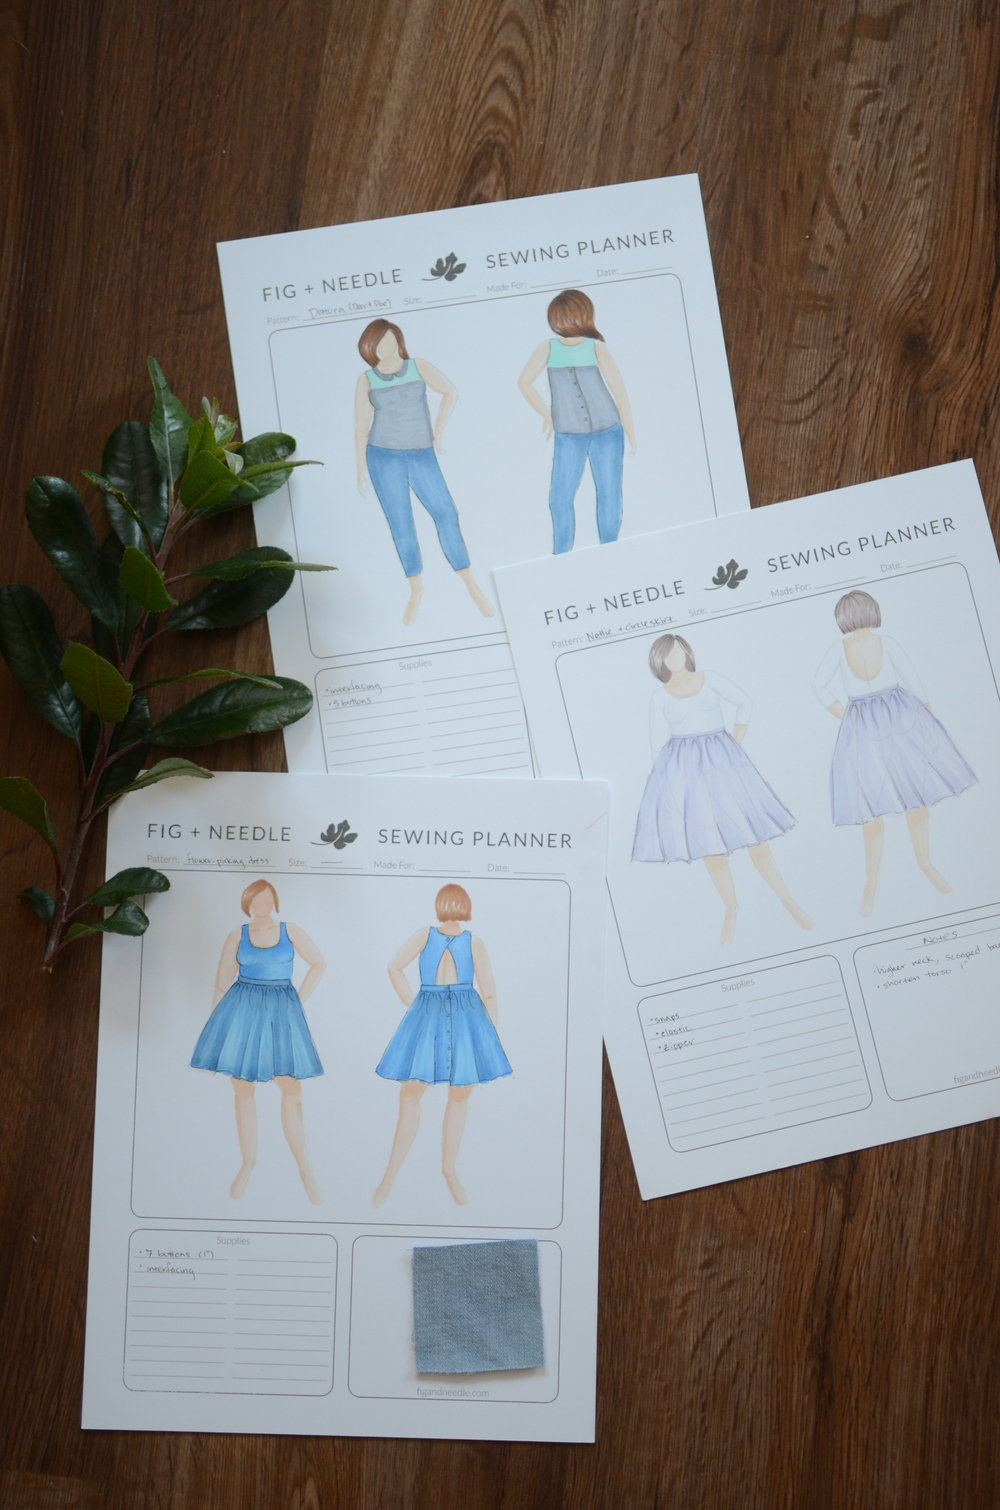 Check out the Fig + Needle blog for your free sewing planner!